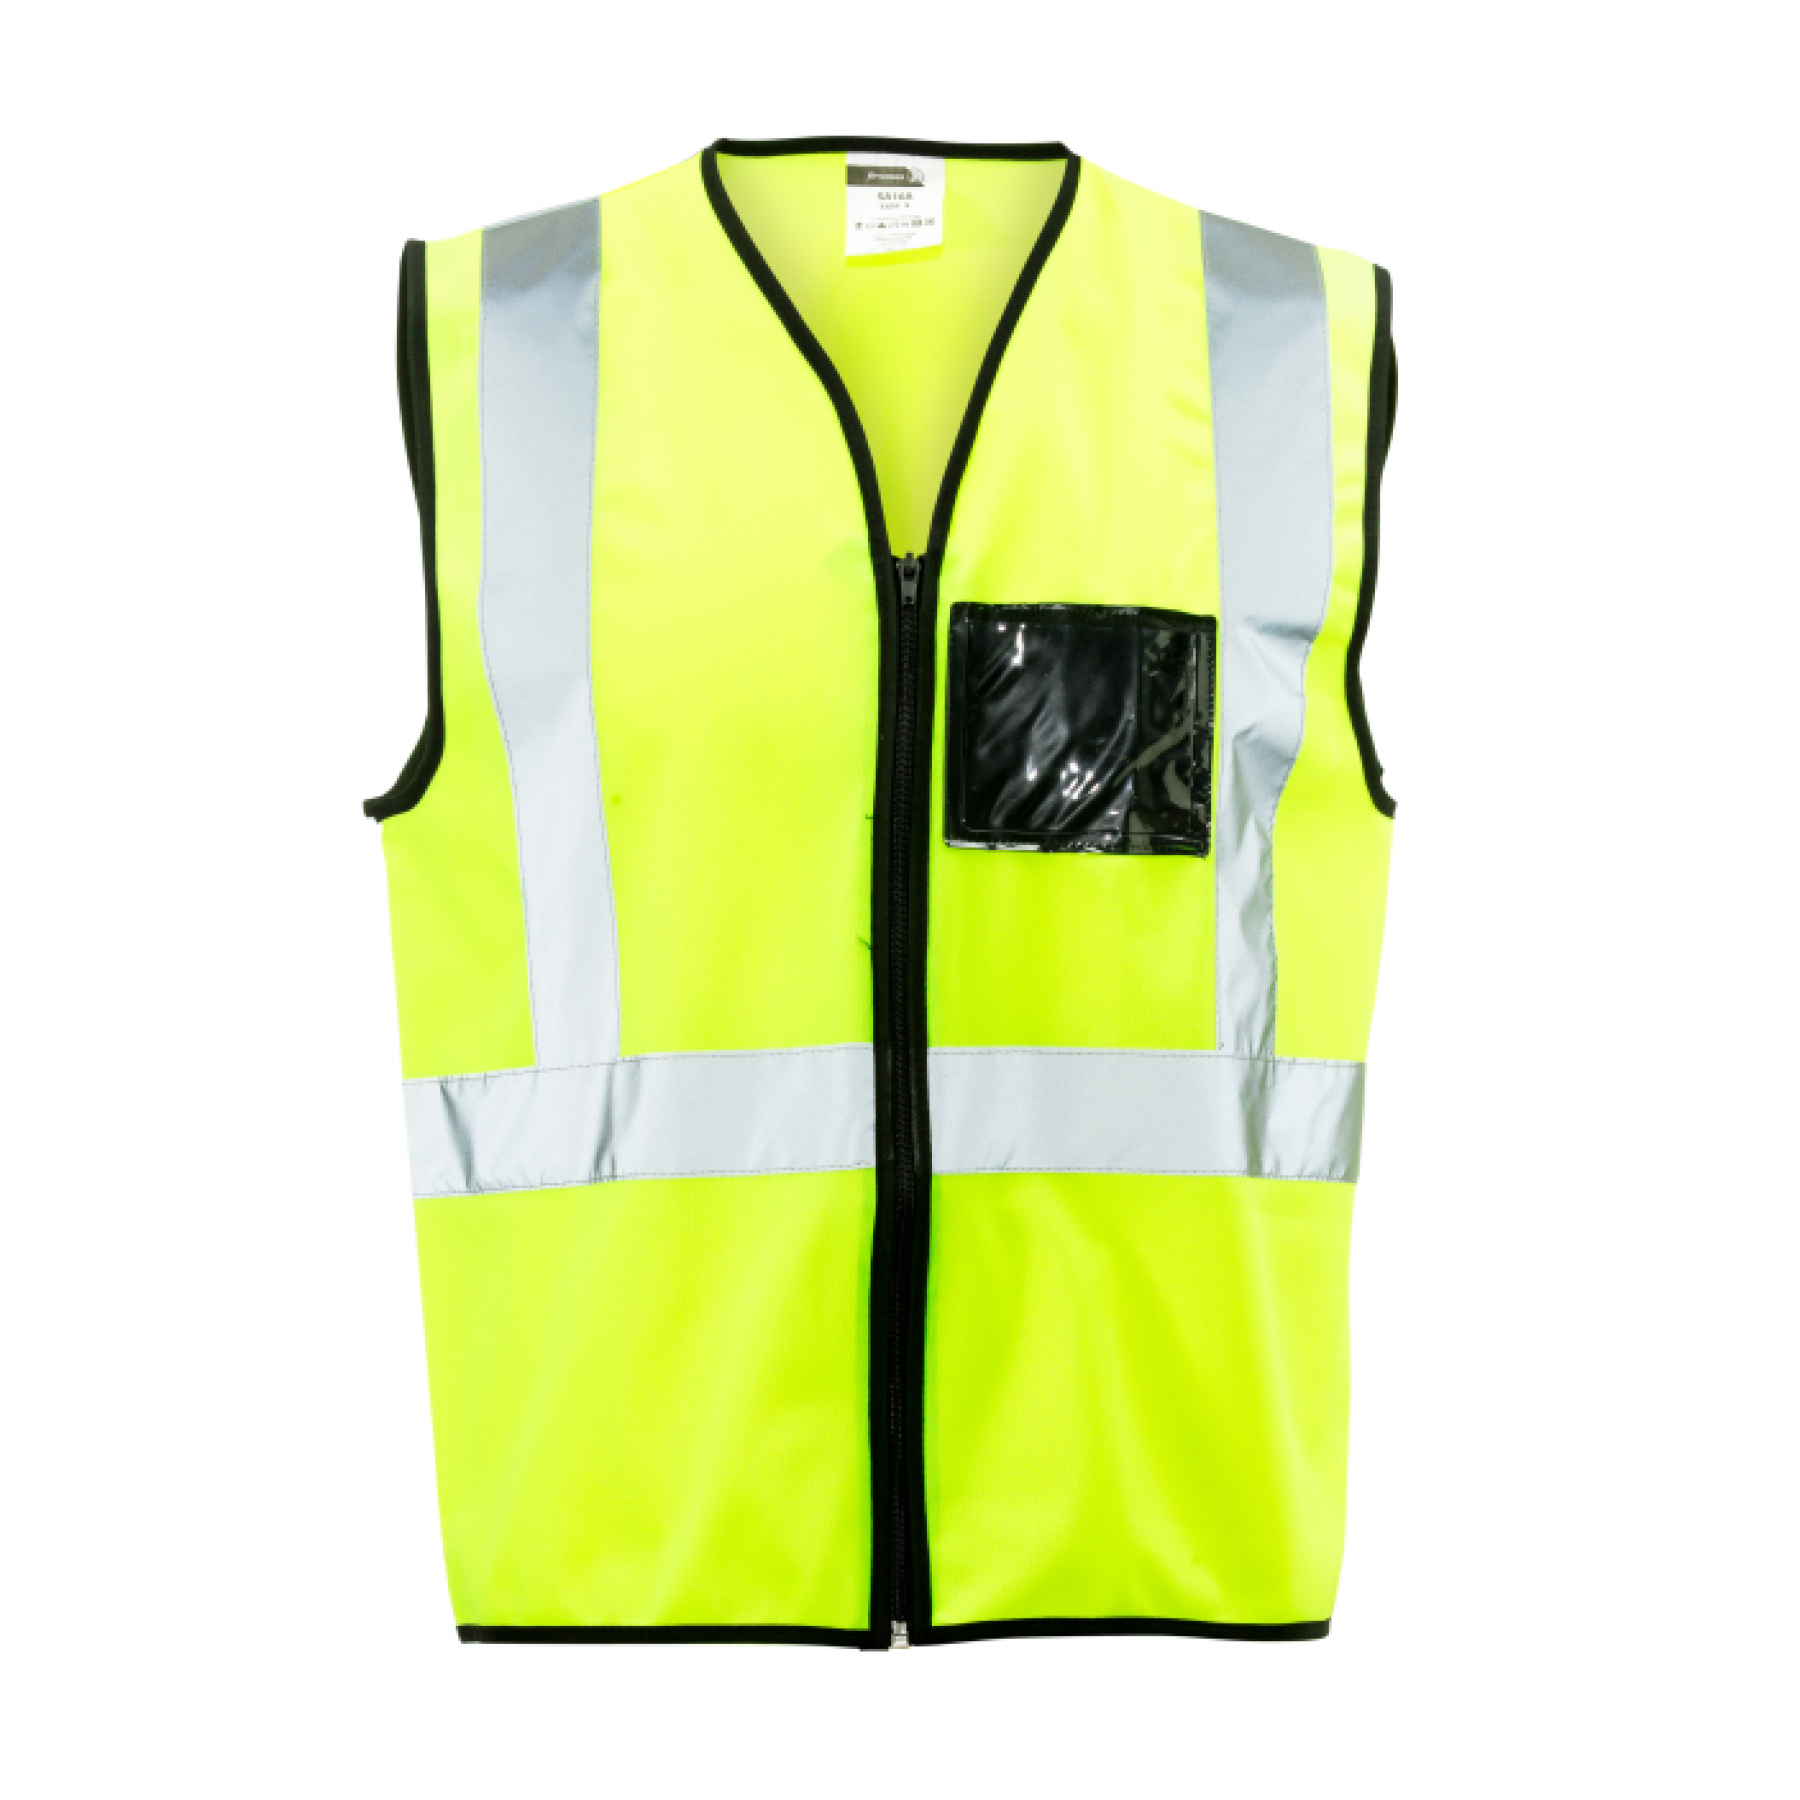 Lime Reflective Vest, Zip, Id 3x Large